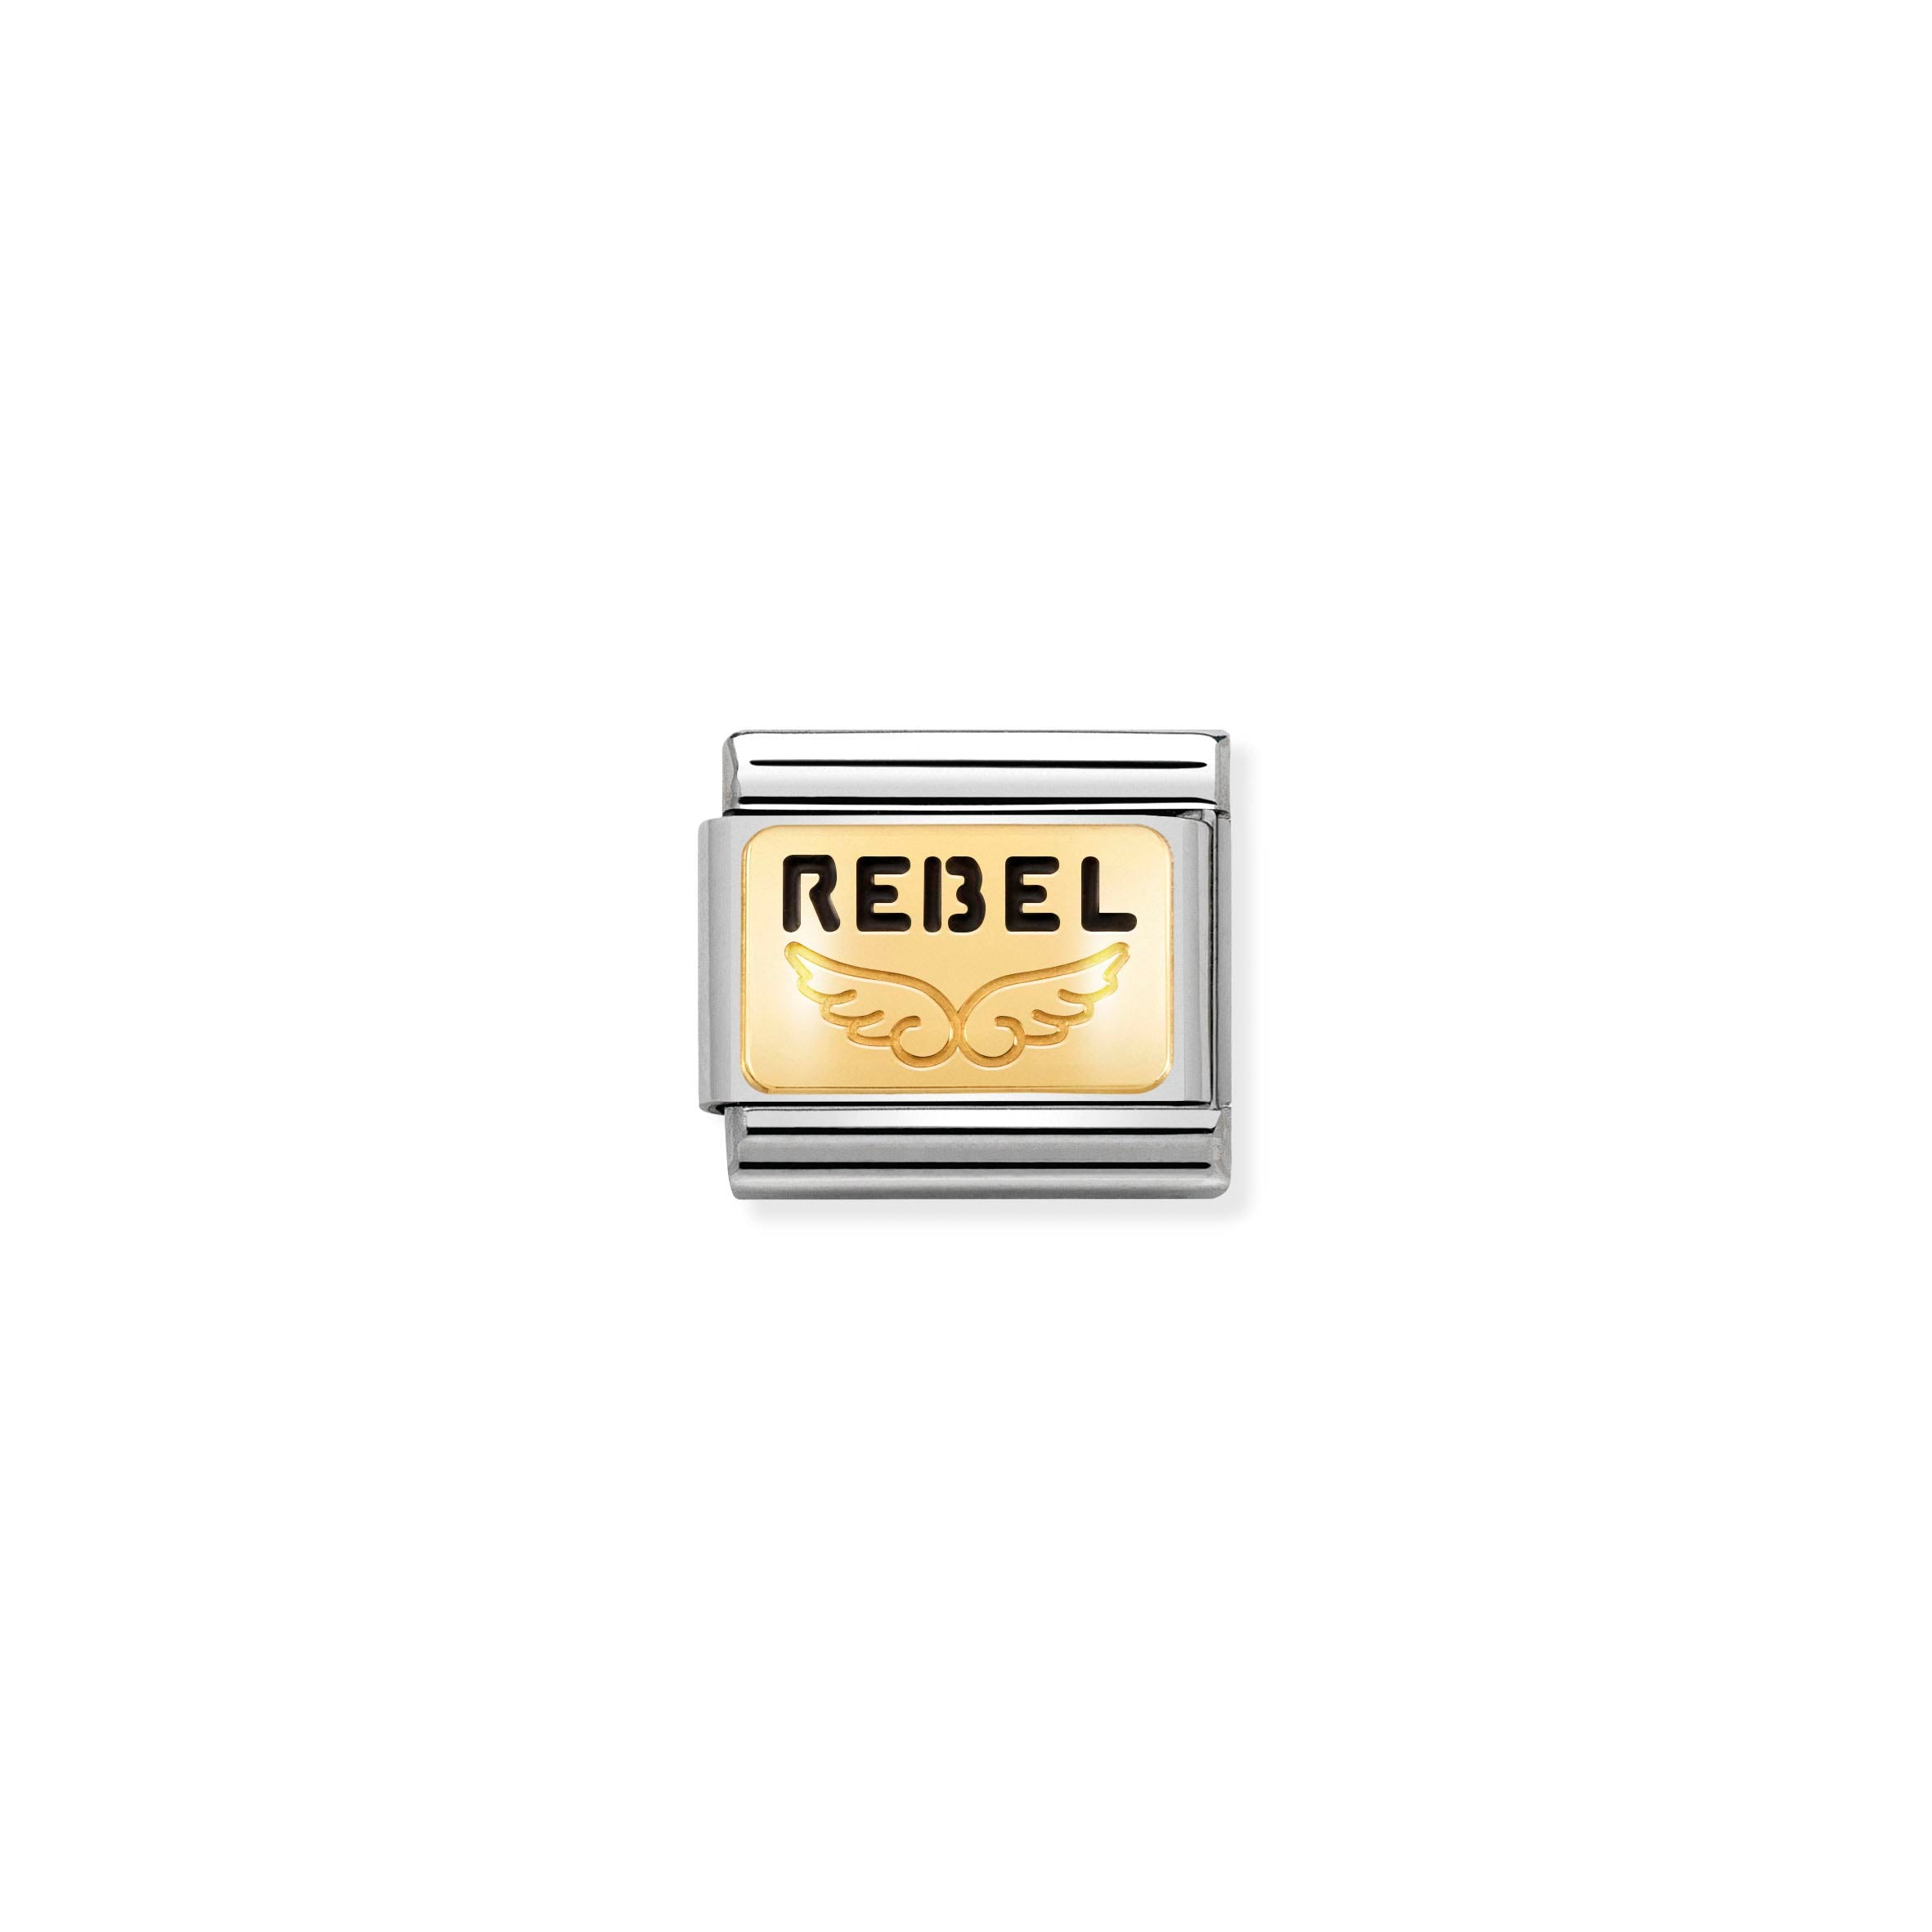 NOMINATION - Composable Classic PLATES st/steel, enamel & 18ct gold (Rebel with a cause angel)